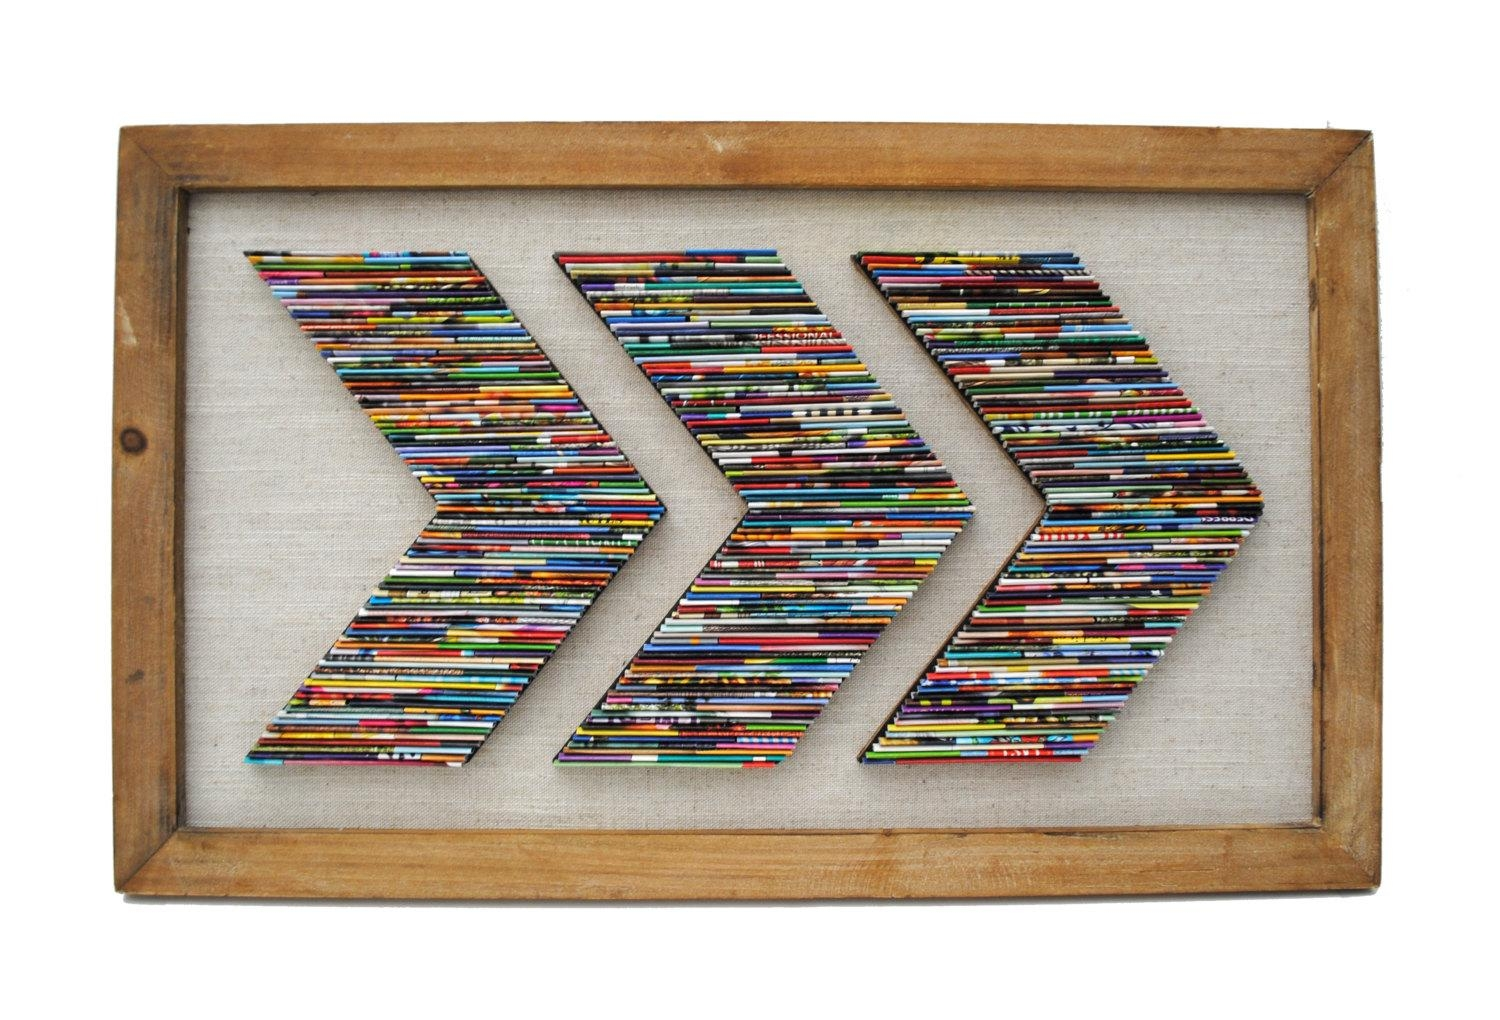 20 top recycled wall art wall art ideas for Recycled wall art ideas